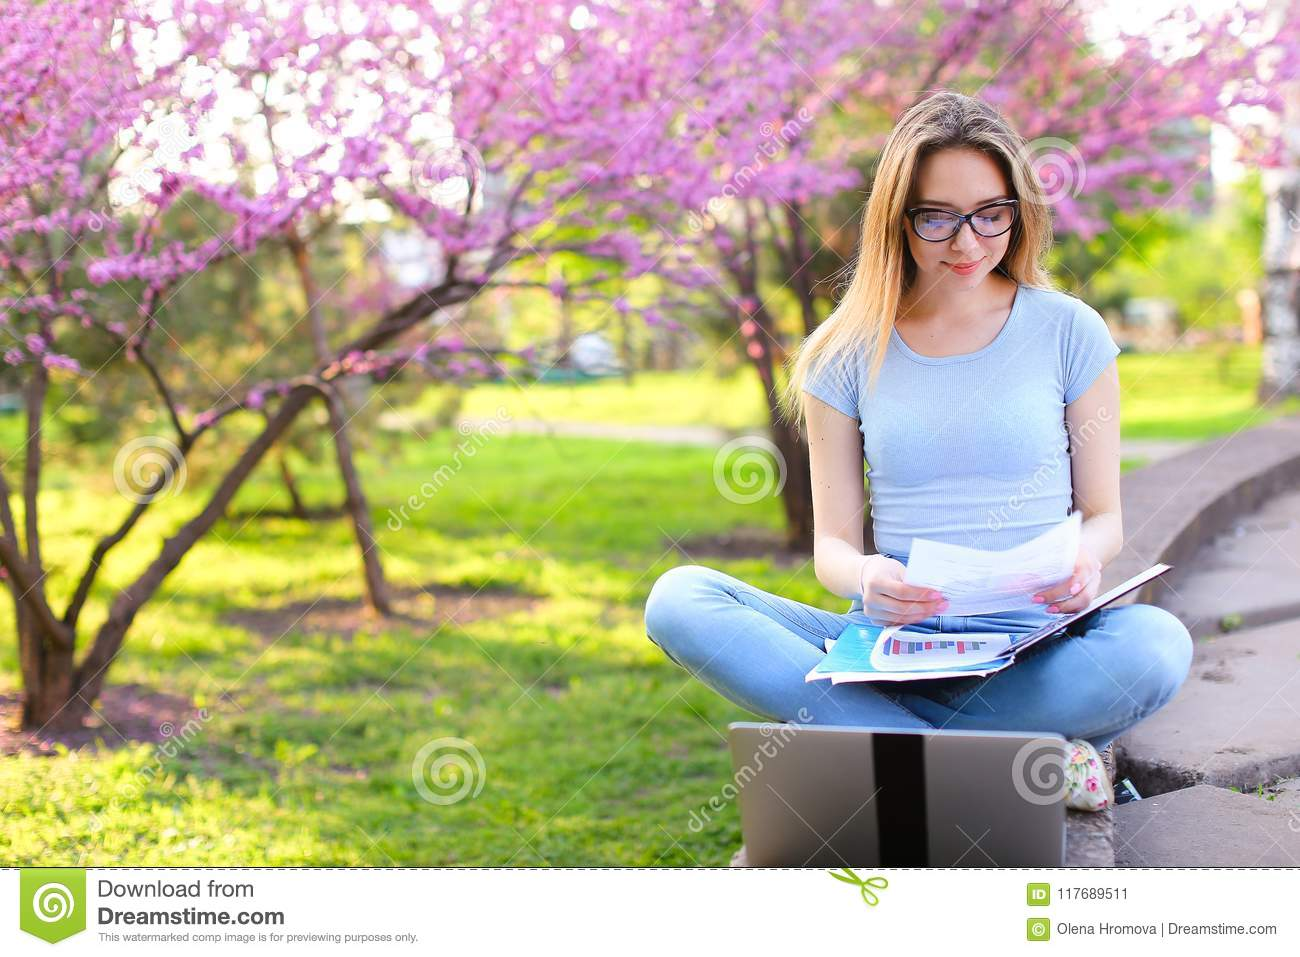 Female student studying with laptop and papers in blooming park.